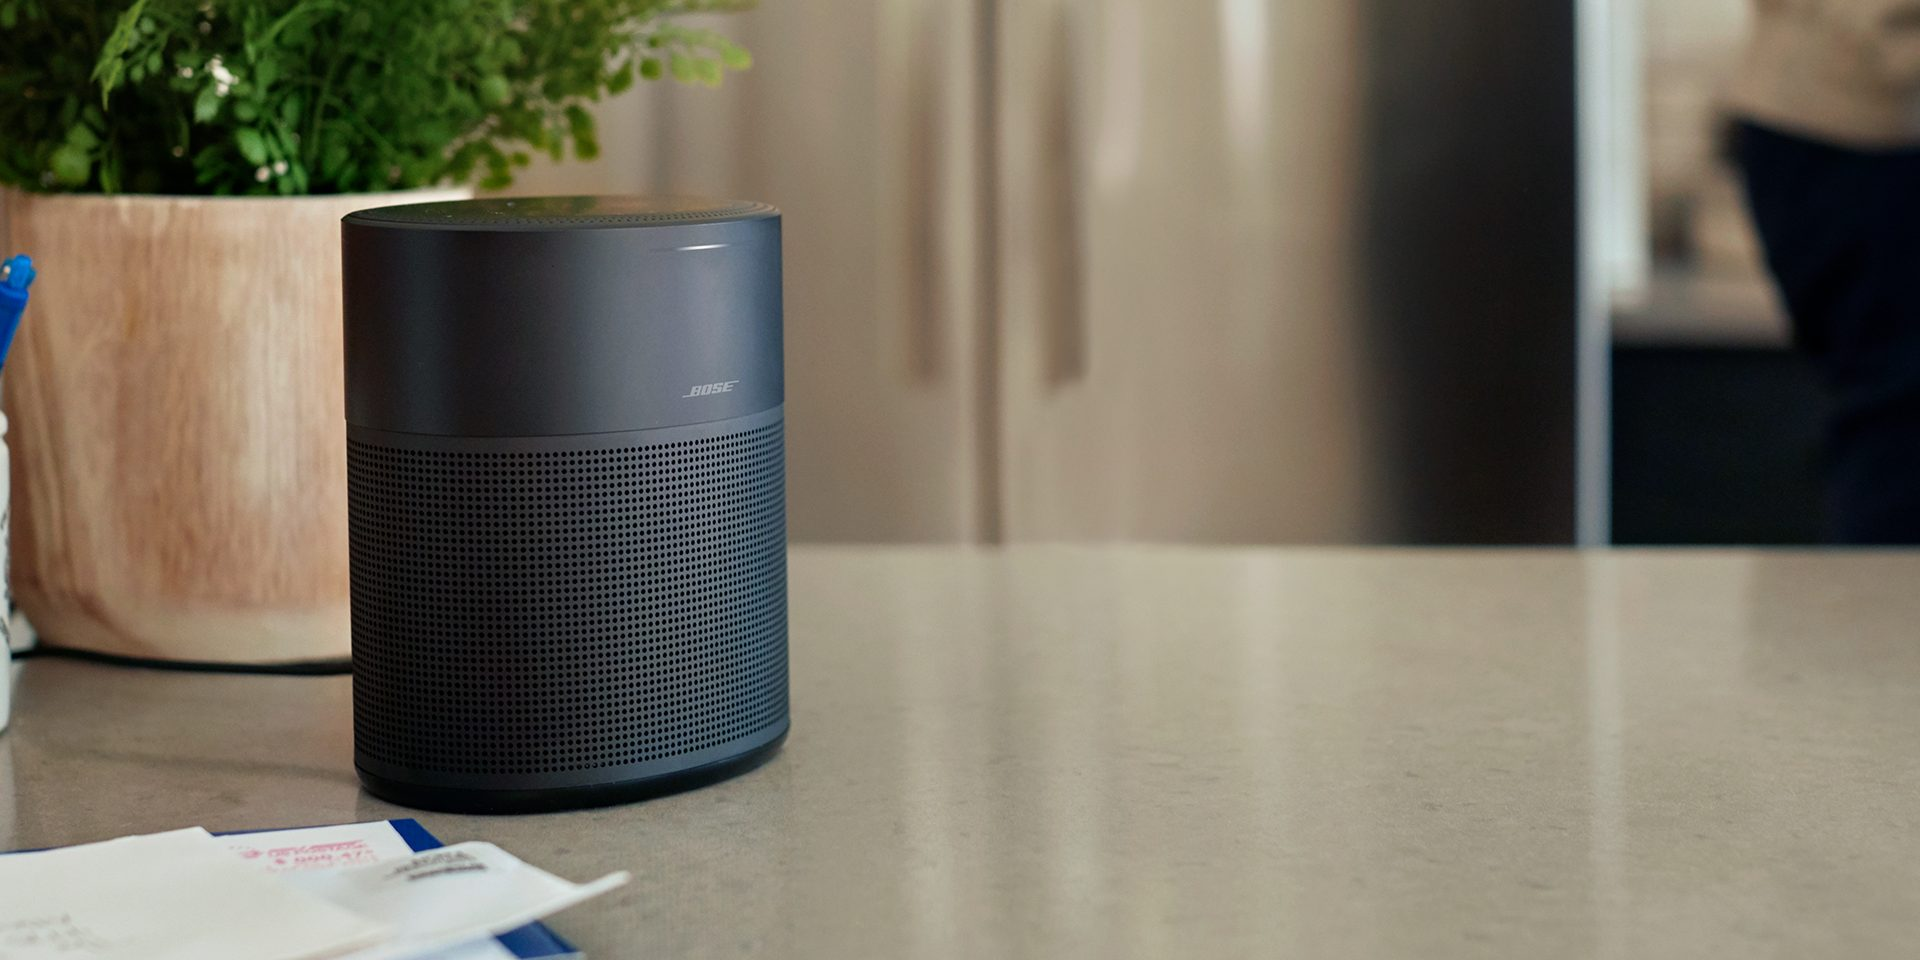 bose 300 smart speaker philips hue